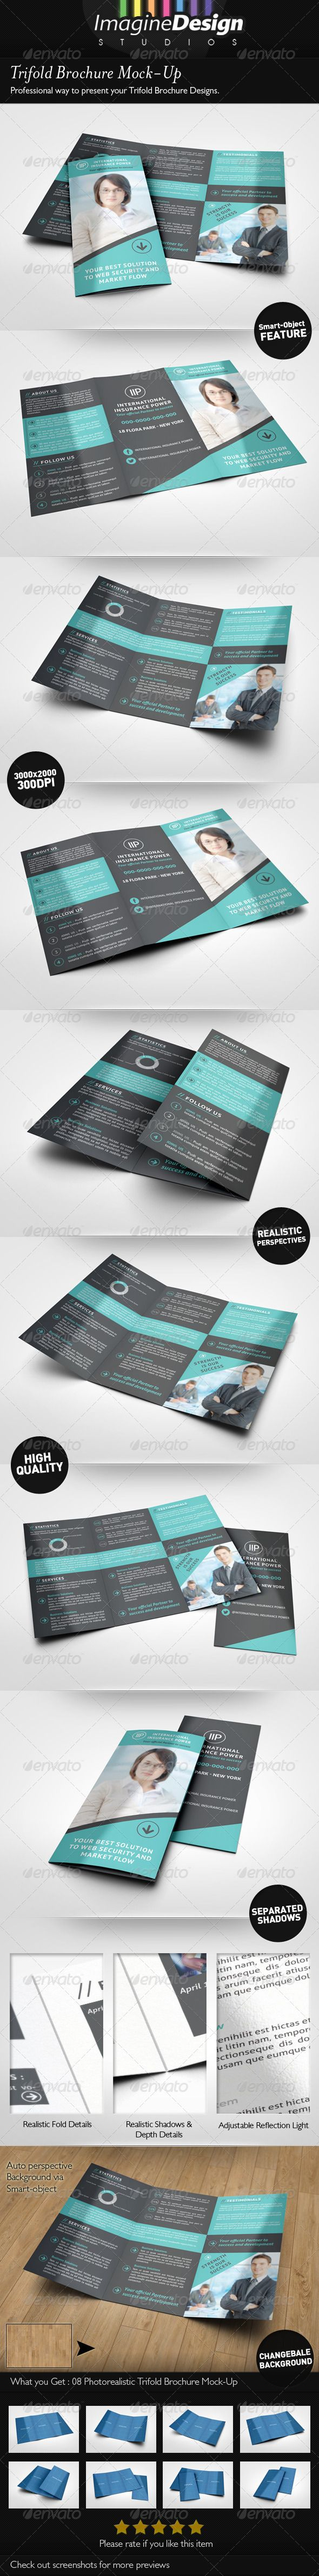 Trifold Brochure Mock-Up Show your Trifold Brochure designs with style! Create a realistic Trifold Brochure Display for your clients in few seconds. These PSD files uses the Smart-Object feature, so you can replace the mockup content easily and quickly.